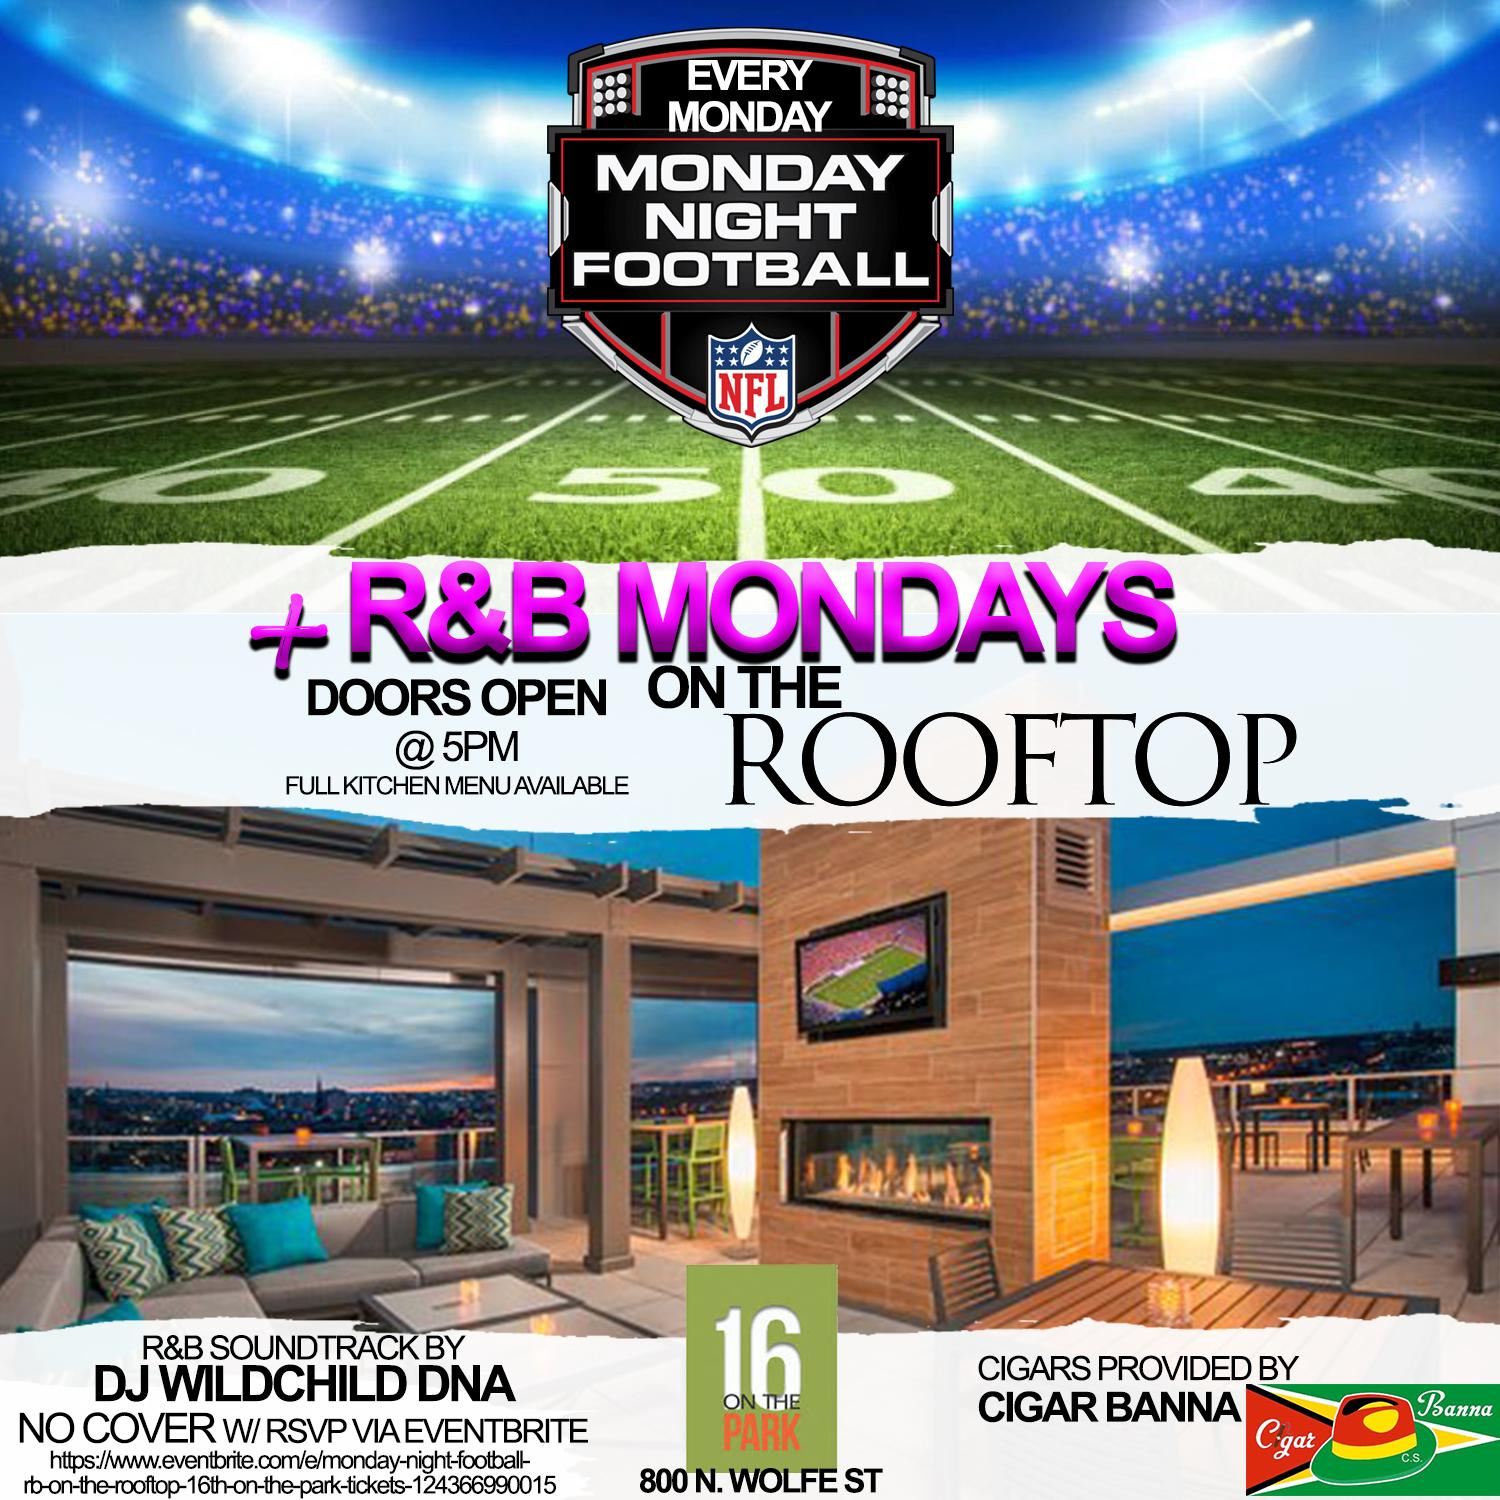 Monday Night Football + R&B & Cigars on the Rooftop @ 16th On The Park